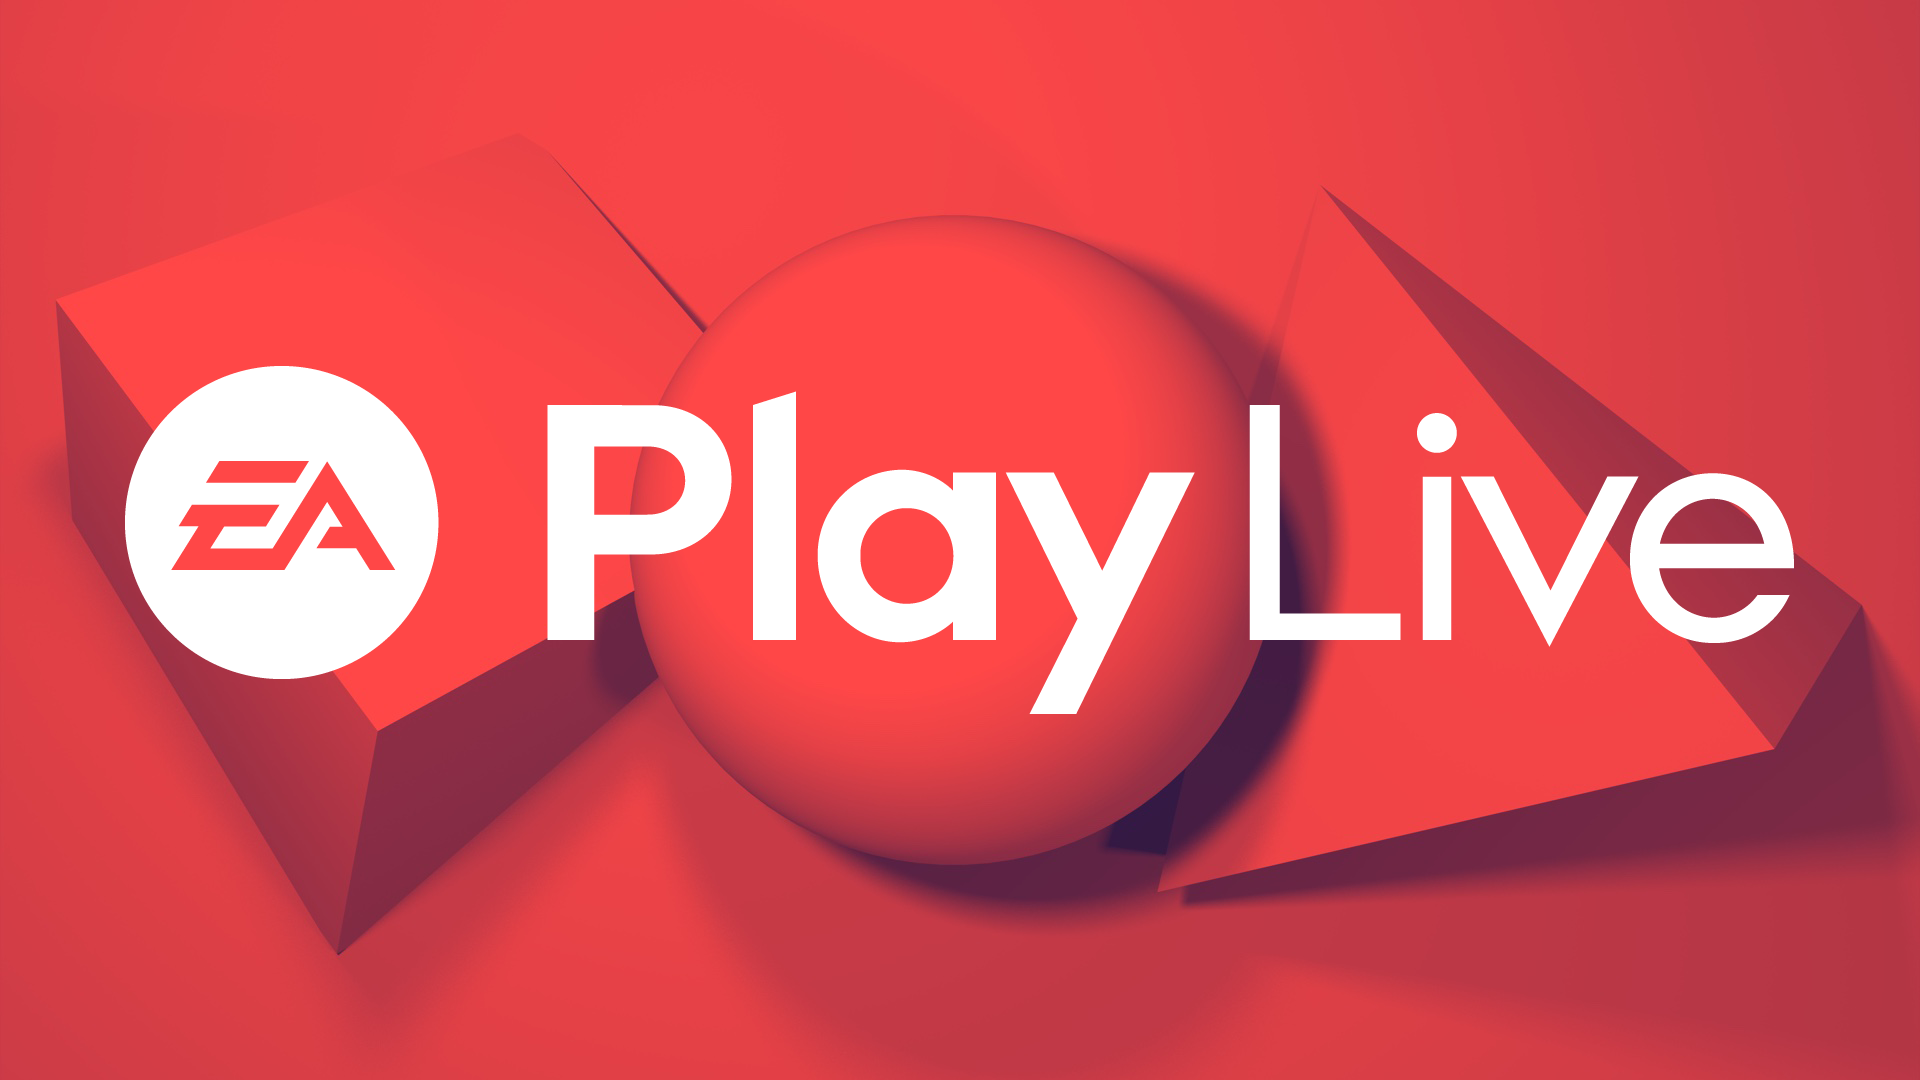 The Sims 5 reveal at EA Play Live 2020 Possible